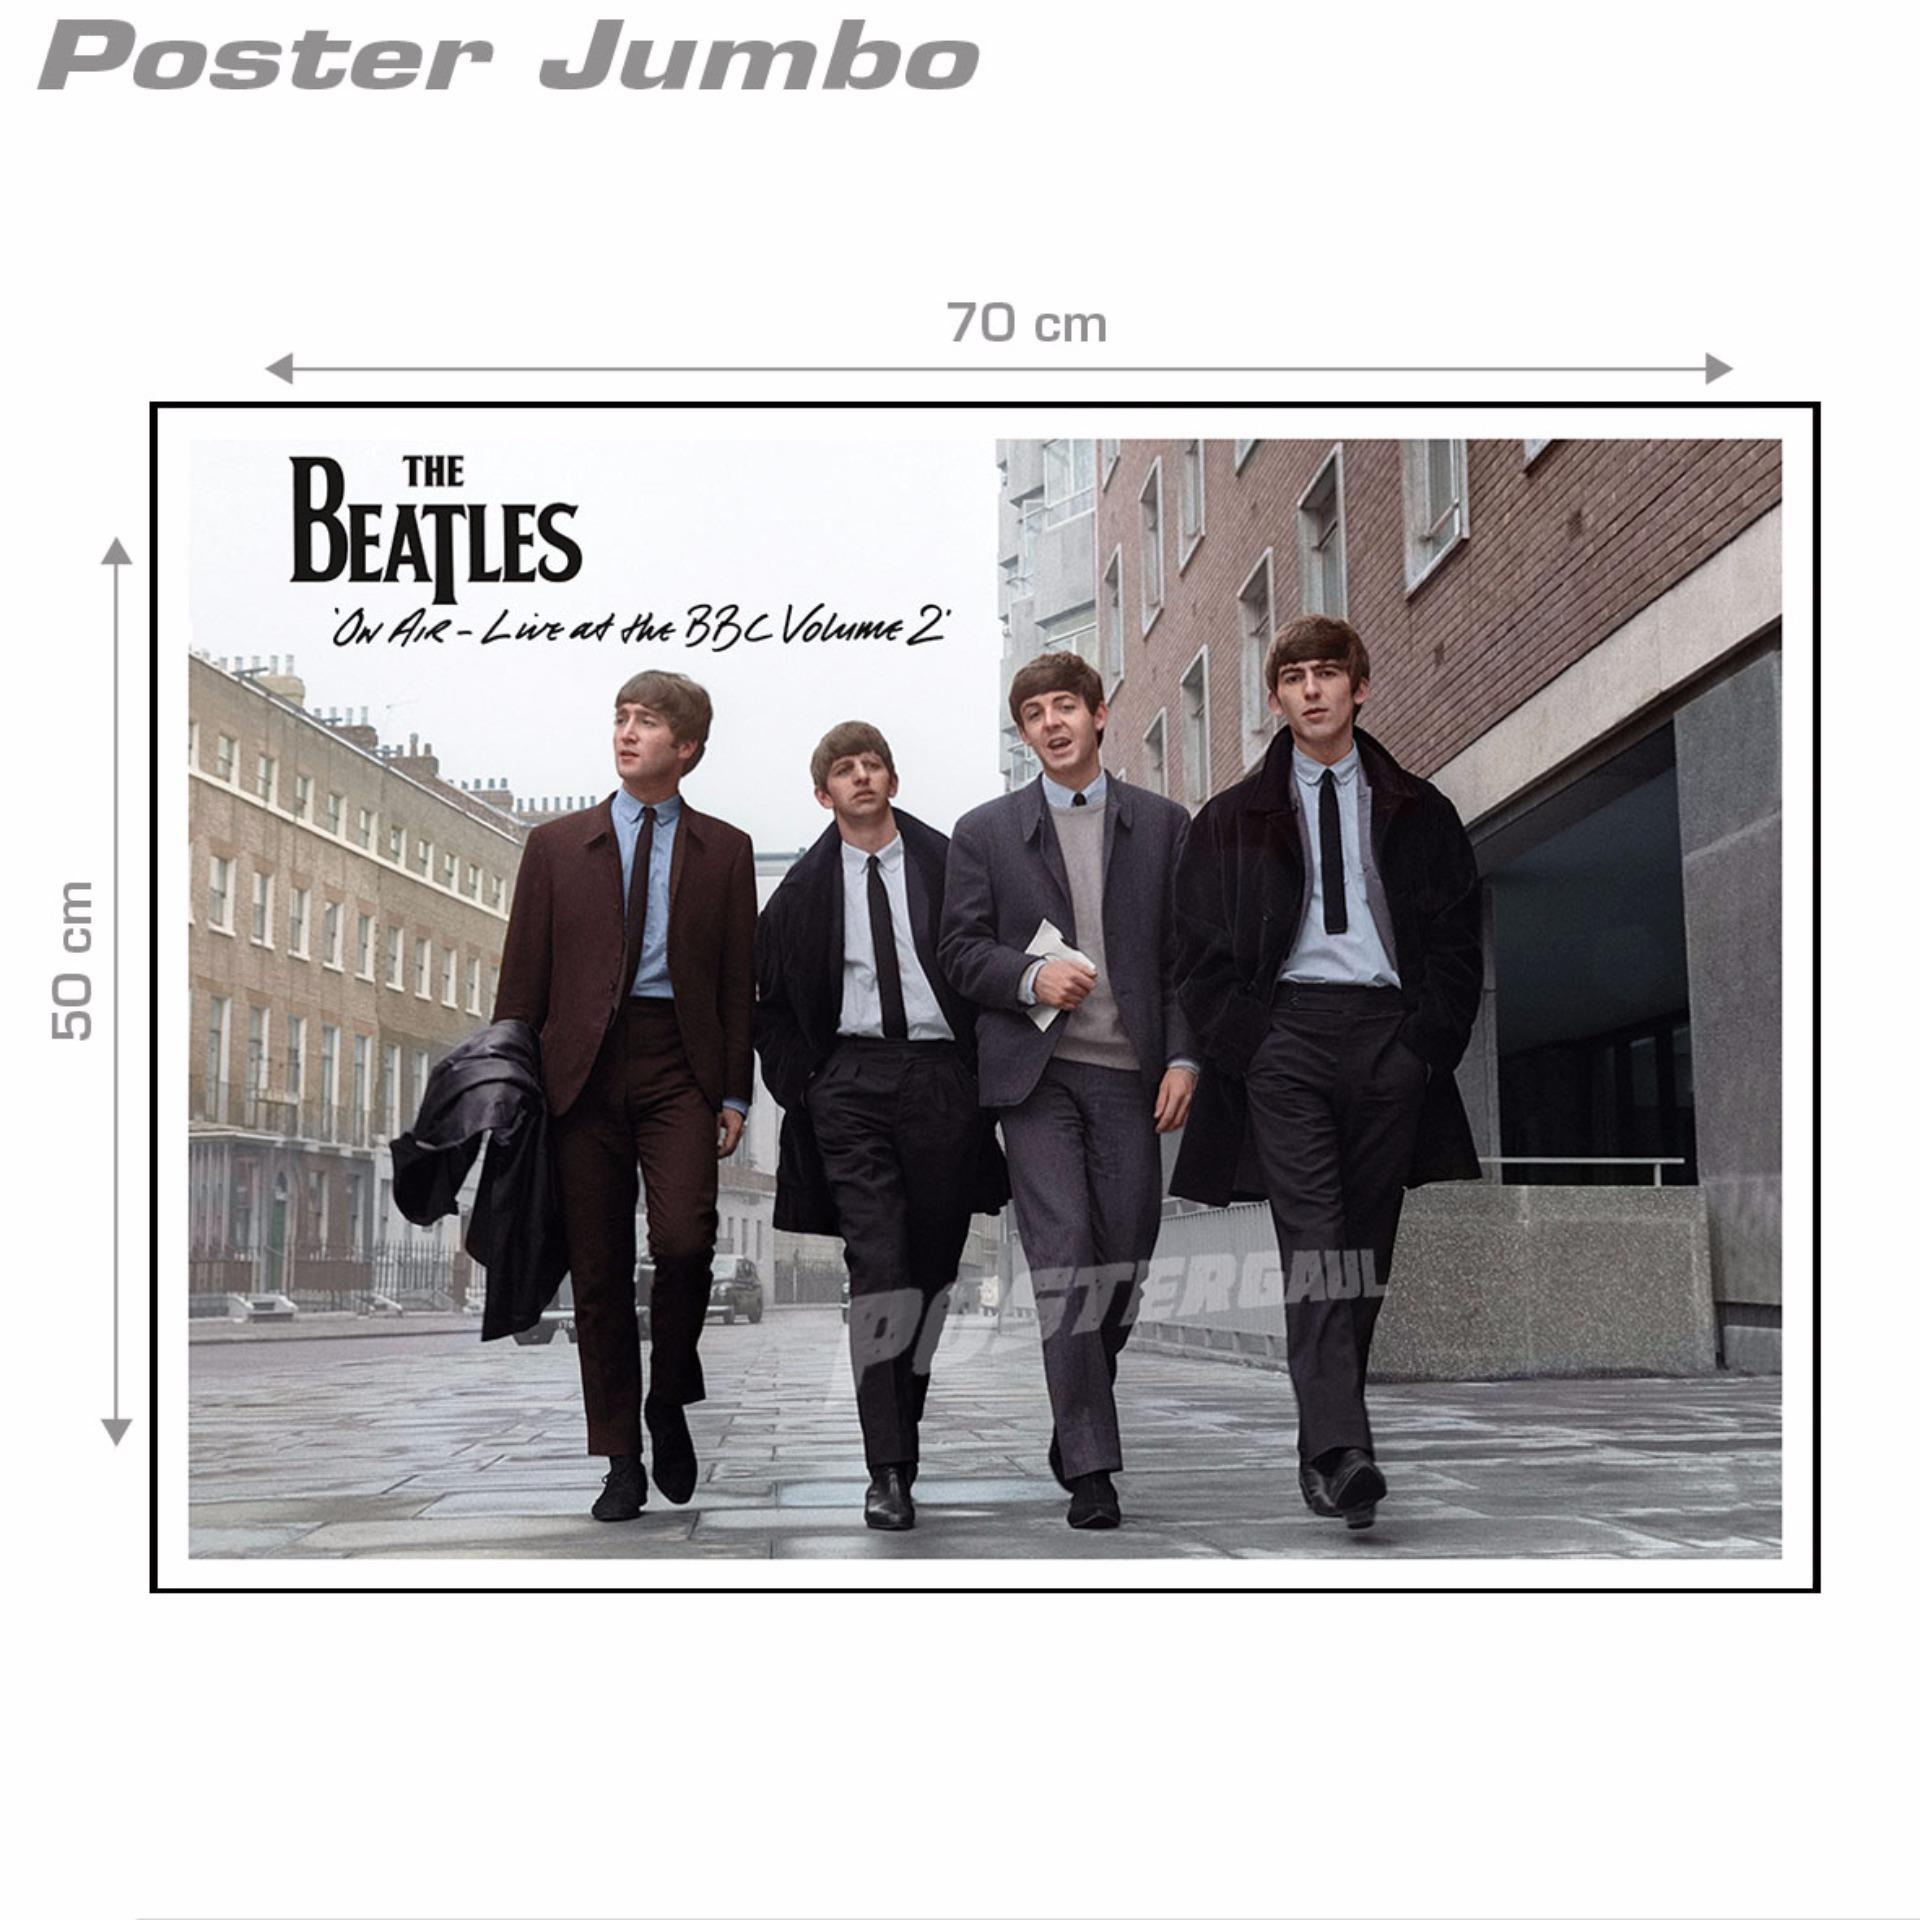 Poster Jumbo: The Beatles #12 - 50 x 70 cm